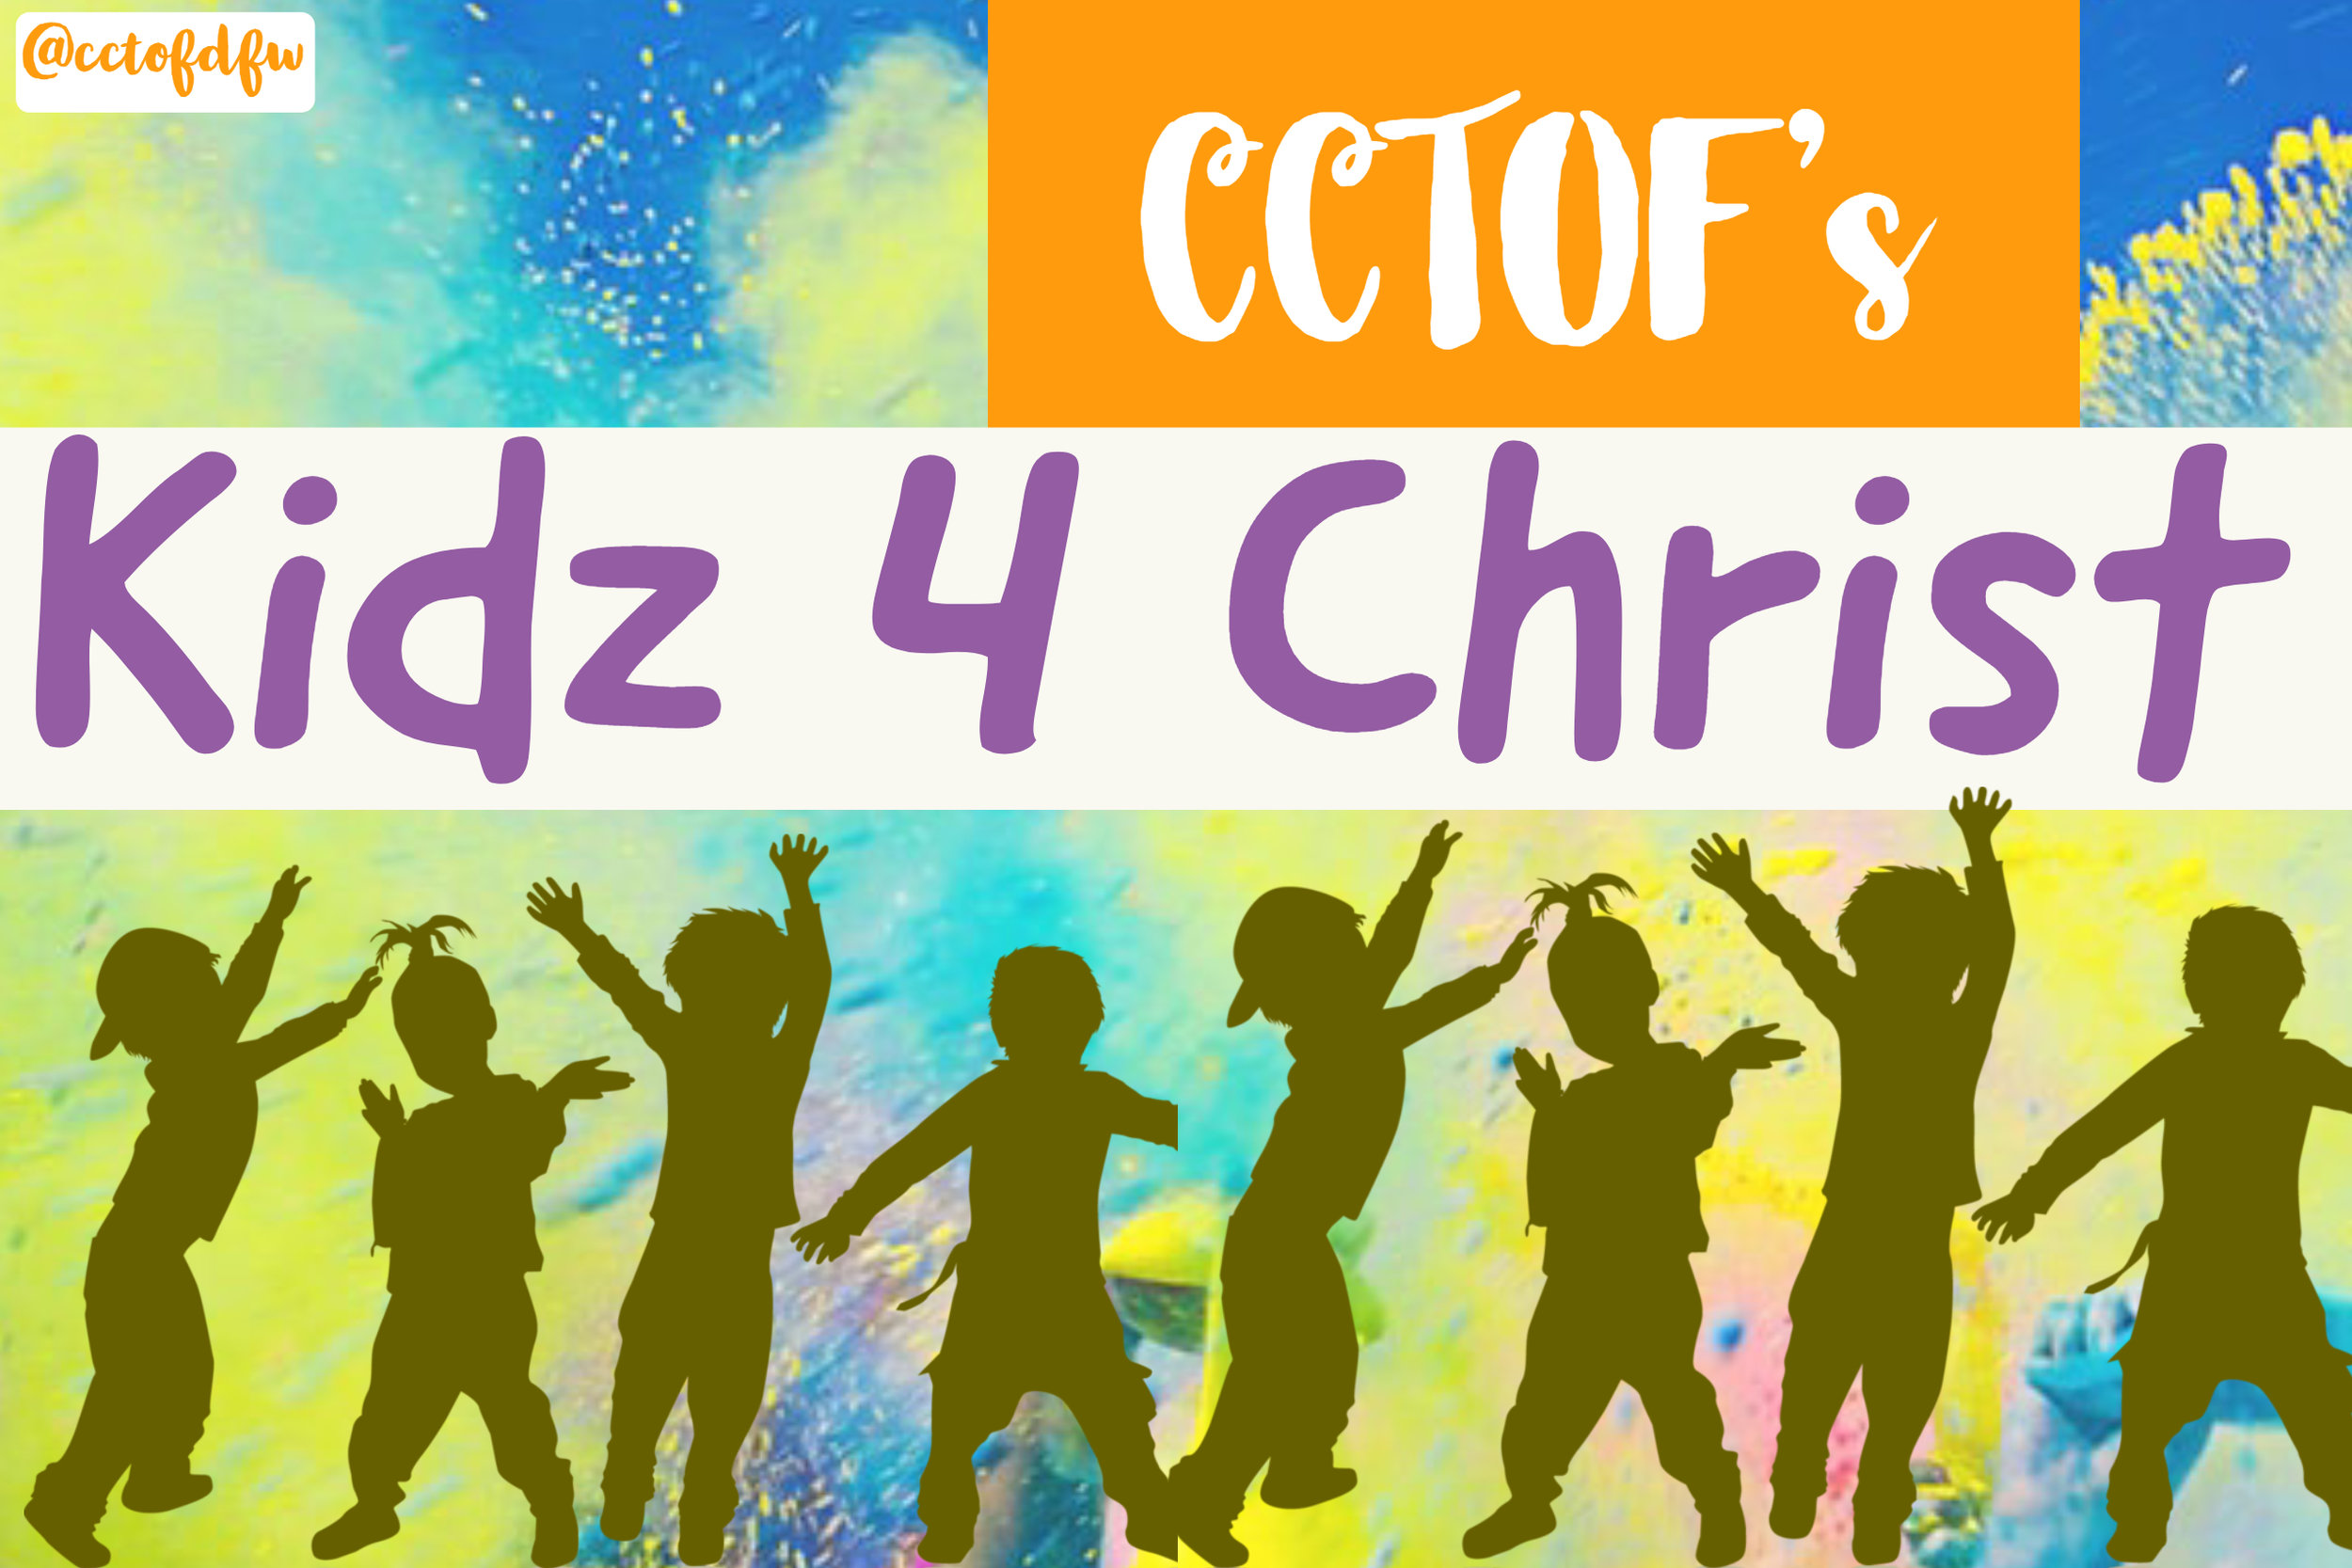 K.F.C. - Kids For Christ Mission is to teach our children about Christ and let them know it is okay to walk, talk, and witness for HIM. We want them to know that they are never too young to be a disciple of Christ.